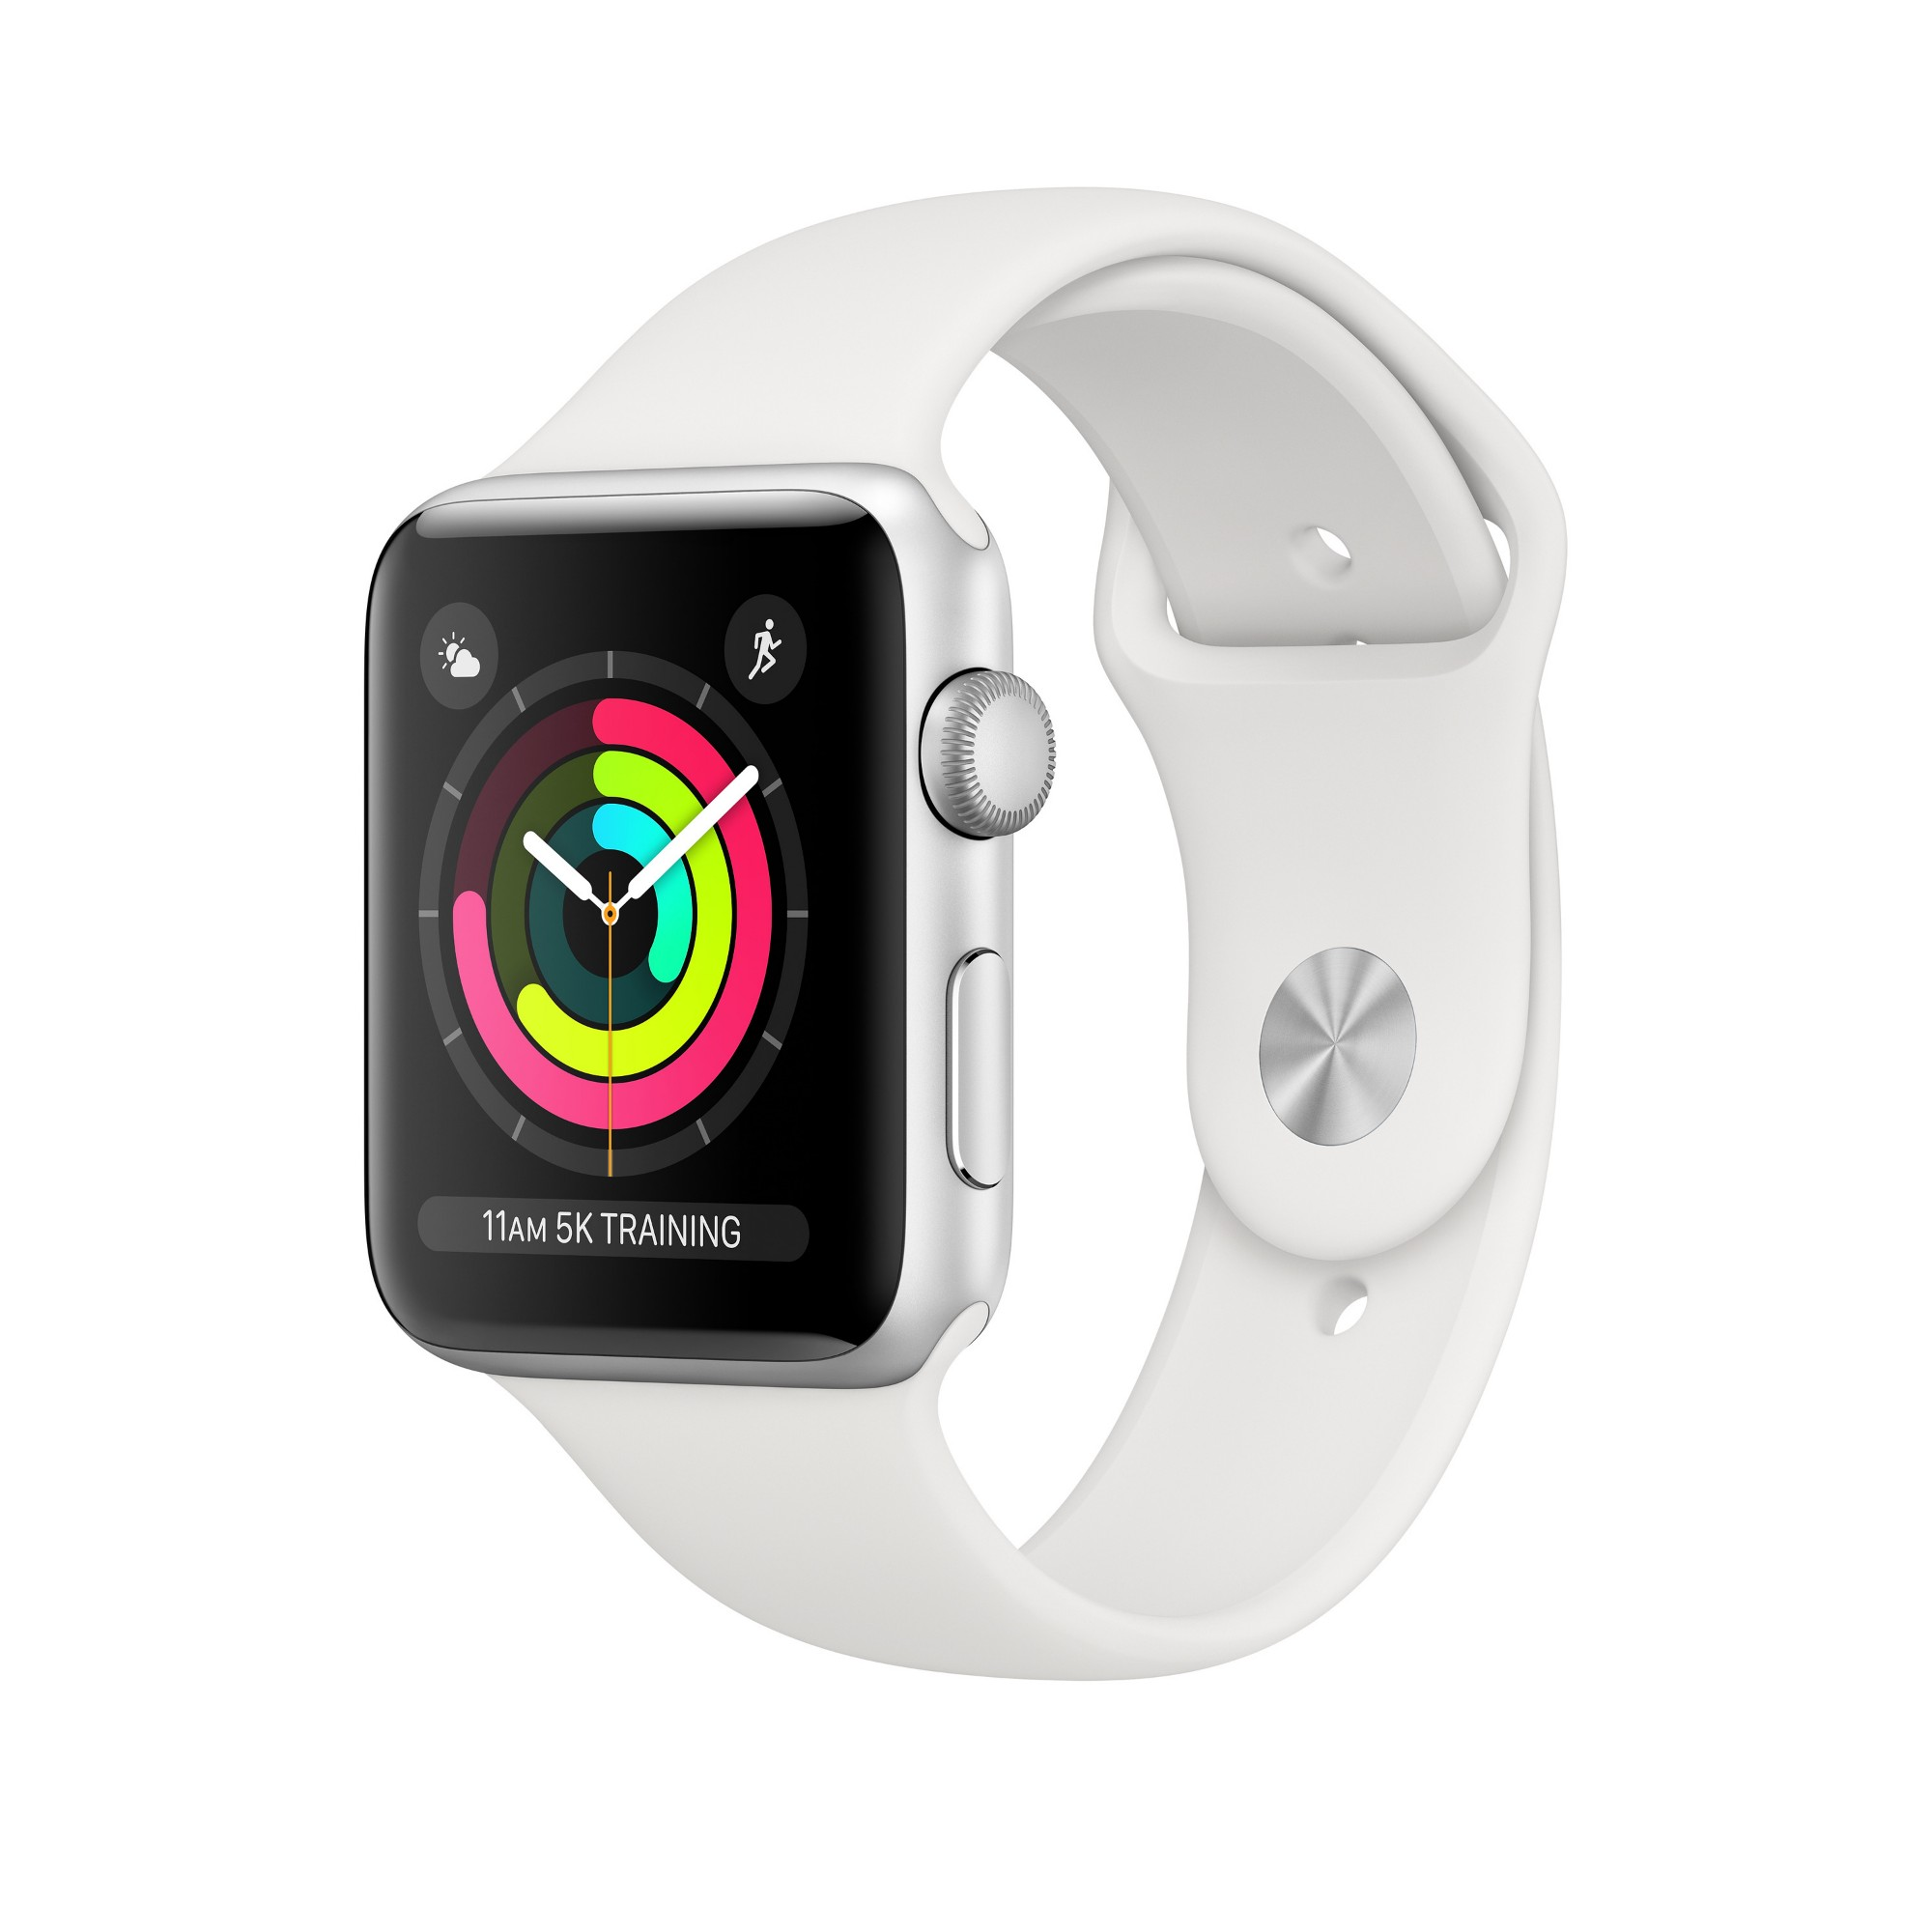 Apple Watch Series 3 smartwatch Silver OLED GPS (satellite)